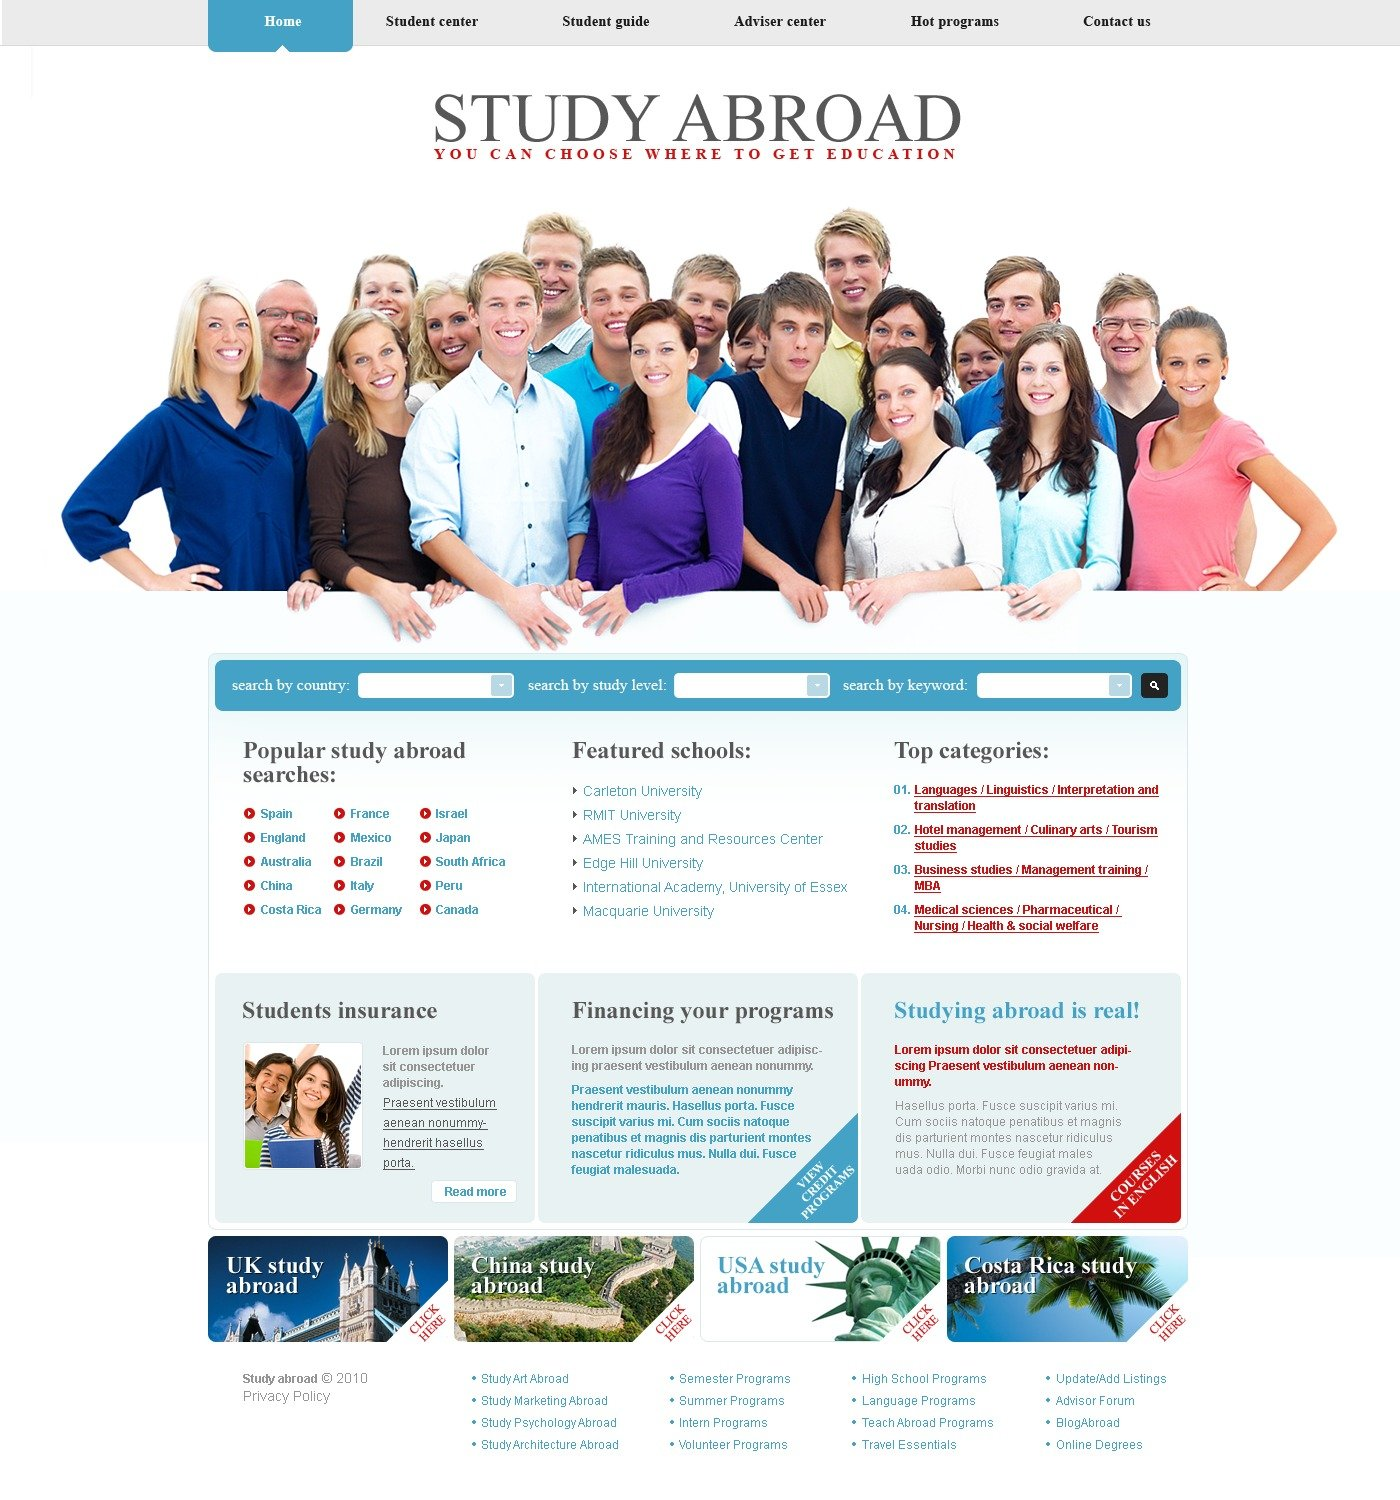 The Study Abroad PSD Design 54076, one of the best PSD templates of its kind (education, flash 8, wide), also known as study abroad PSD template, education center PSD template, college PSD template, science PSD template, admission PSD template, faculty PSD template, department PSD template, class PSD template, alumni PSD template, student PSD template, professor PSD template, enrolment PSD template, union PSD template, library PSD template, auditorium PSD template, graduate PSD template, direction PSD template, tests PSD template, entrance PSD template, examination PSD template, exam PSD template, sport PSD template, community PSD template, party PSD template, administration PSD template, rector PSD template, head PSD template, dean PSD template, college PSD template, s and related with study abroad, education center, college, science, admission, faculty, department, class, alumni, student, professor, enrolment, union, library, auditorium, graduate, direction, tests, entrance, examination, exam, sport, community, party, administration, rector, head, dean, college, s, etc.